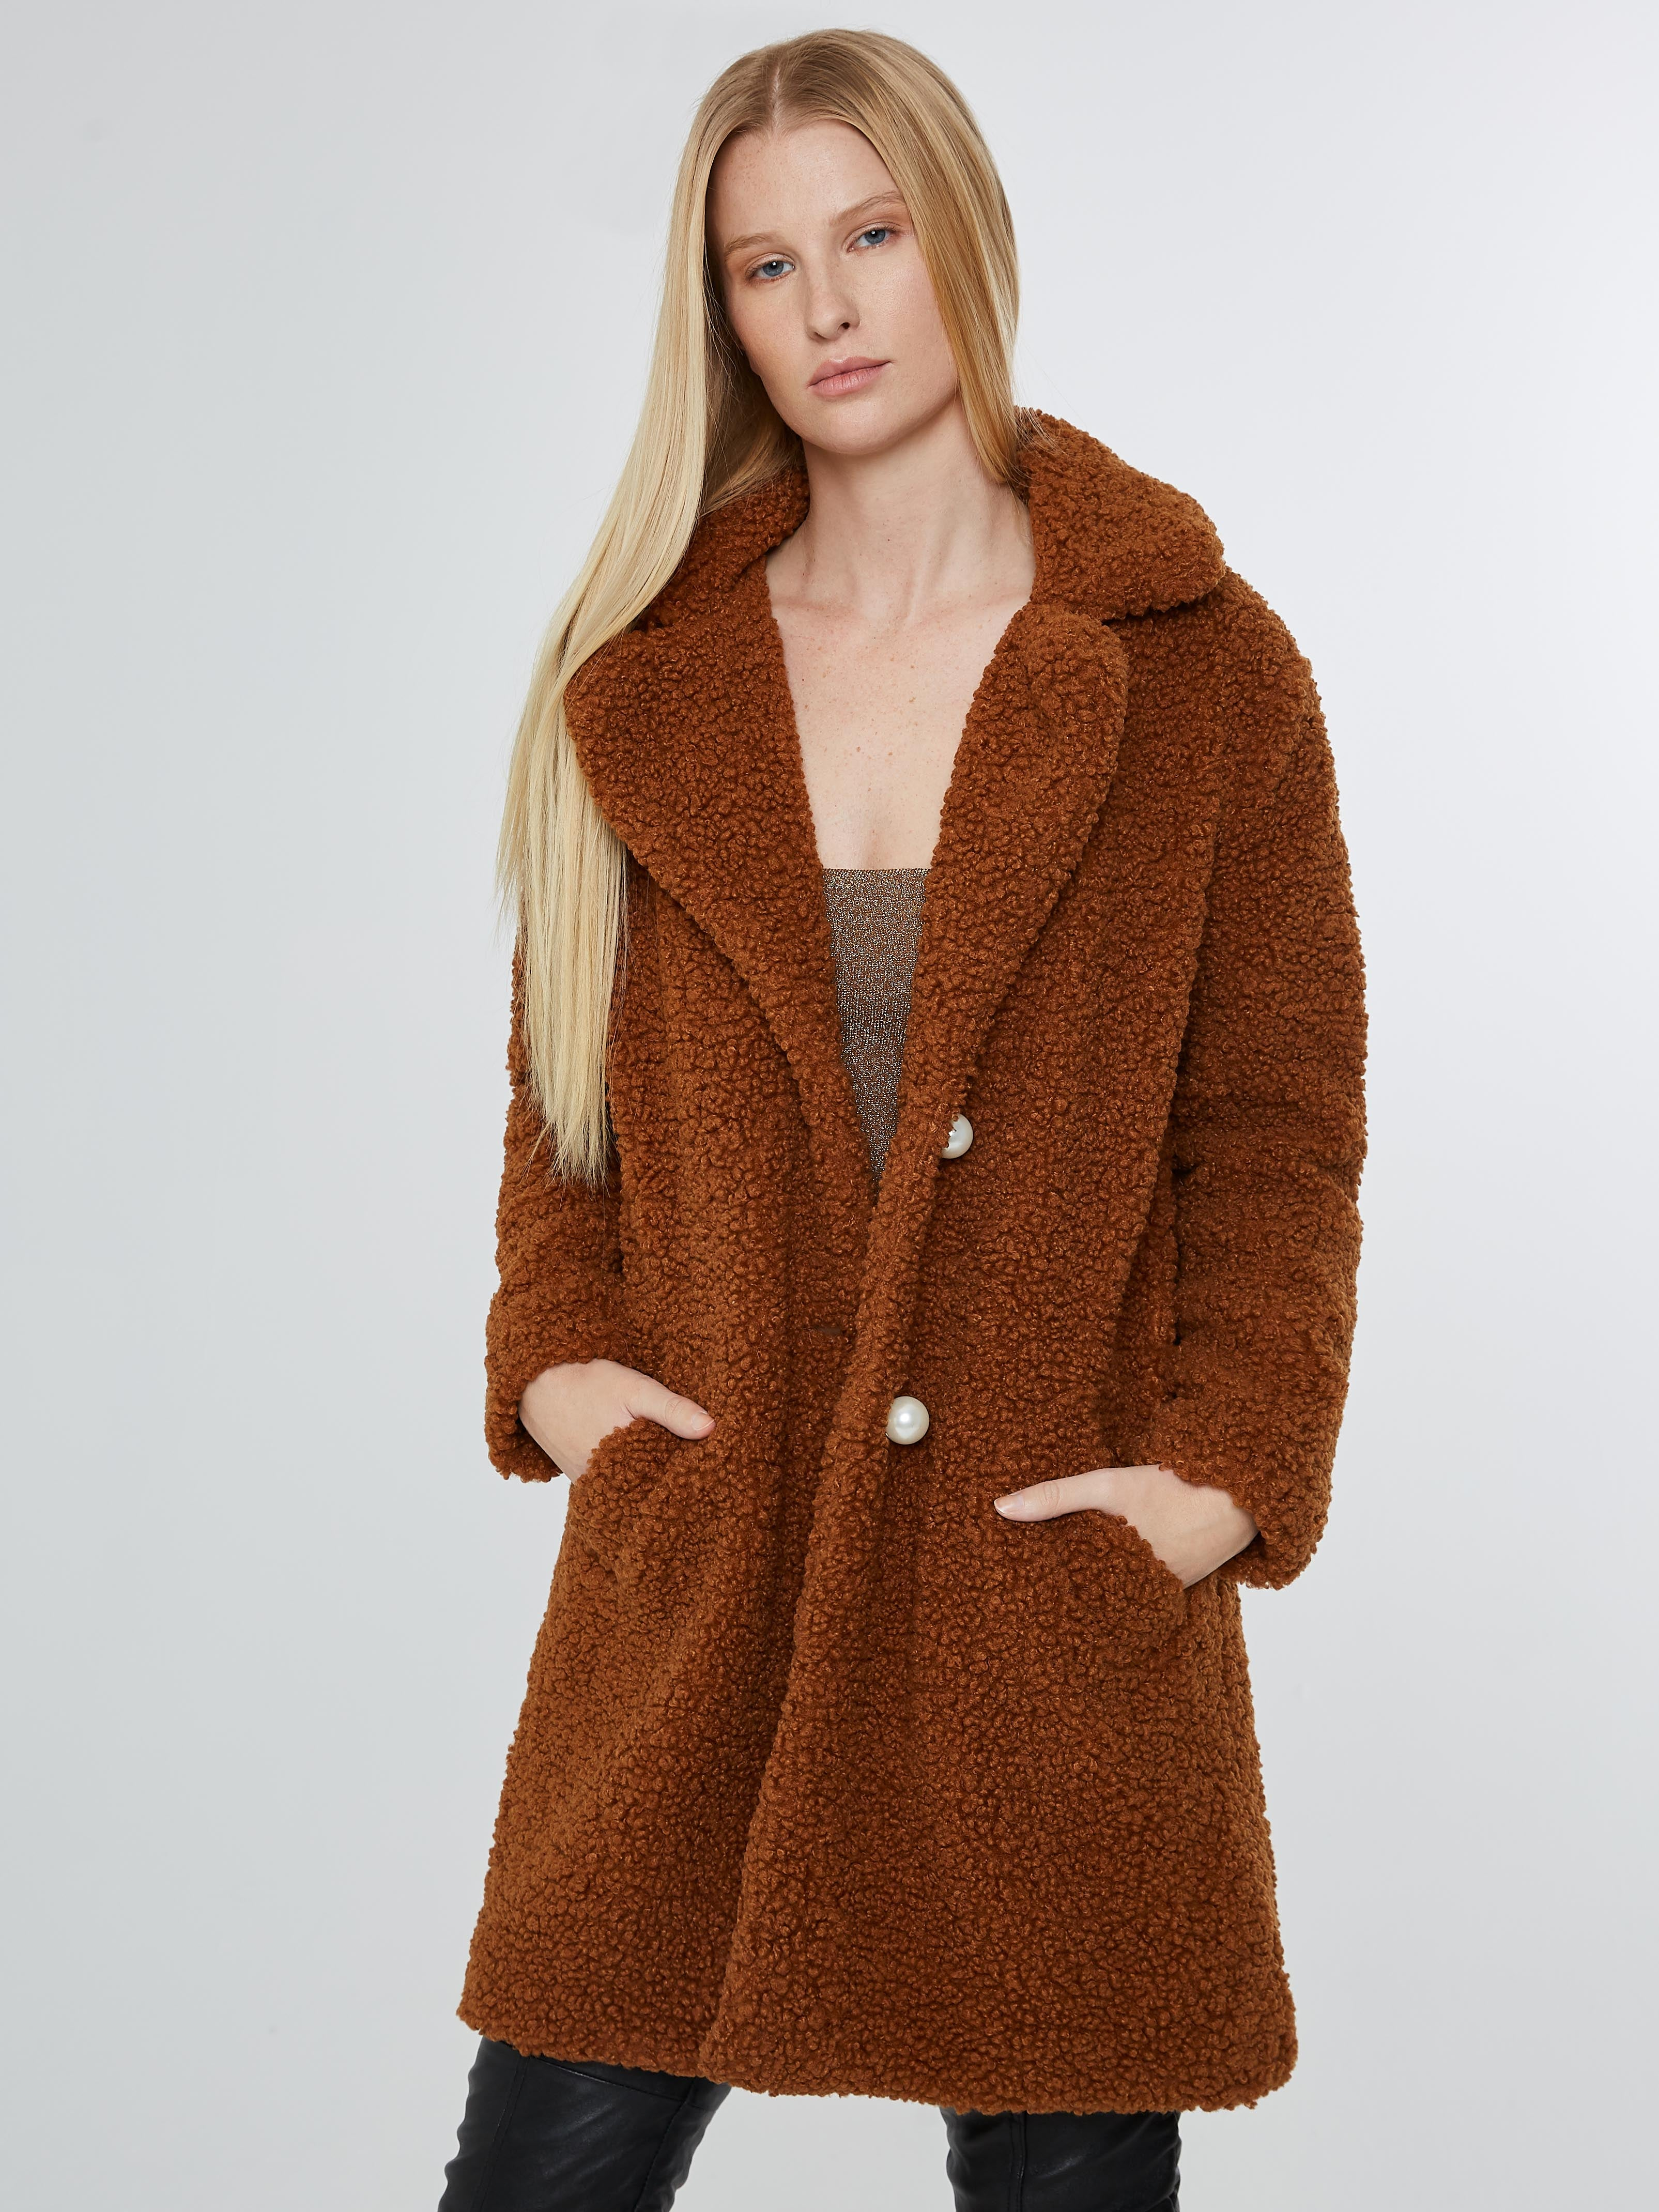 Chocolate brown faux shearling coat with pearl buttons